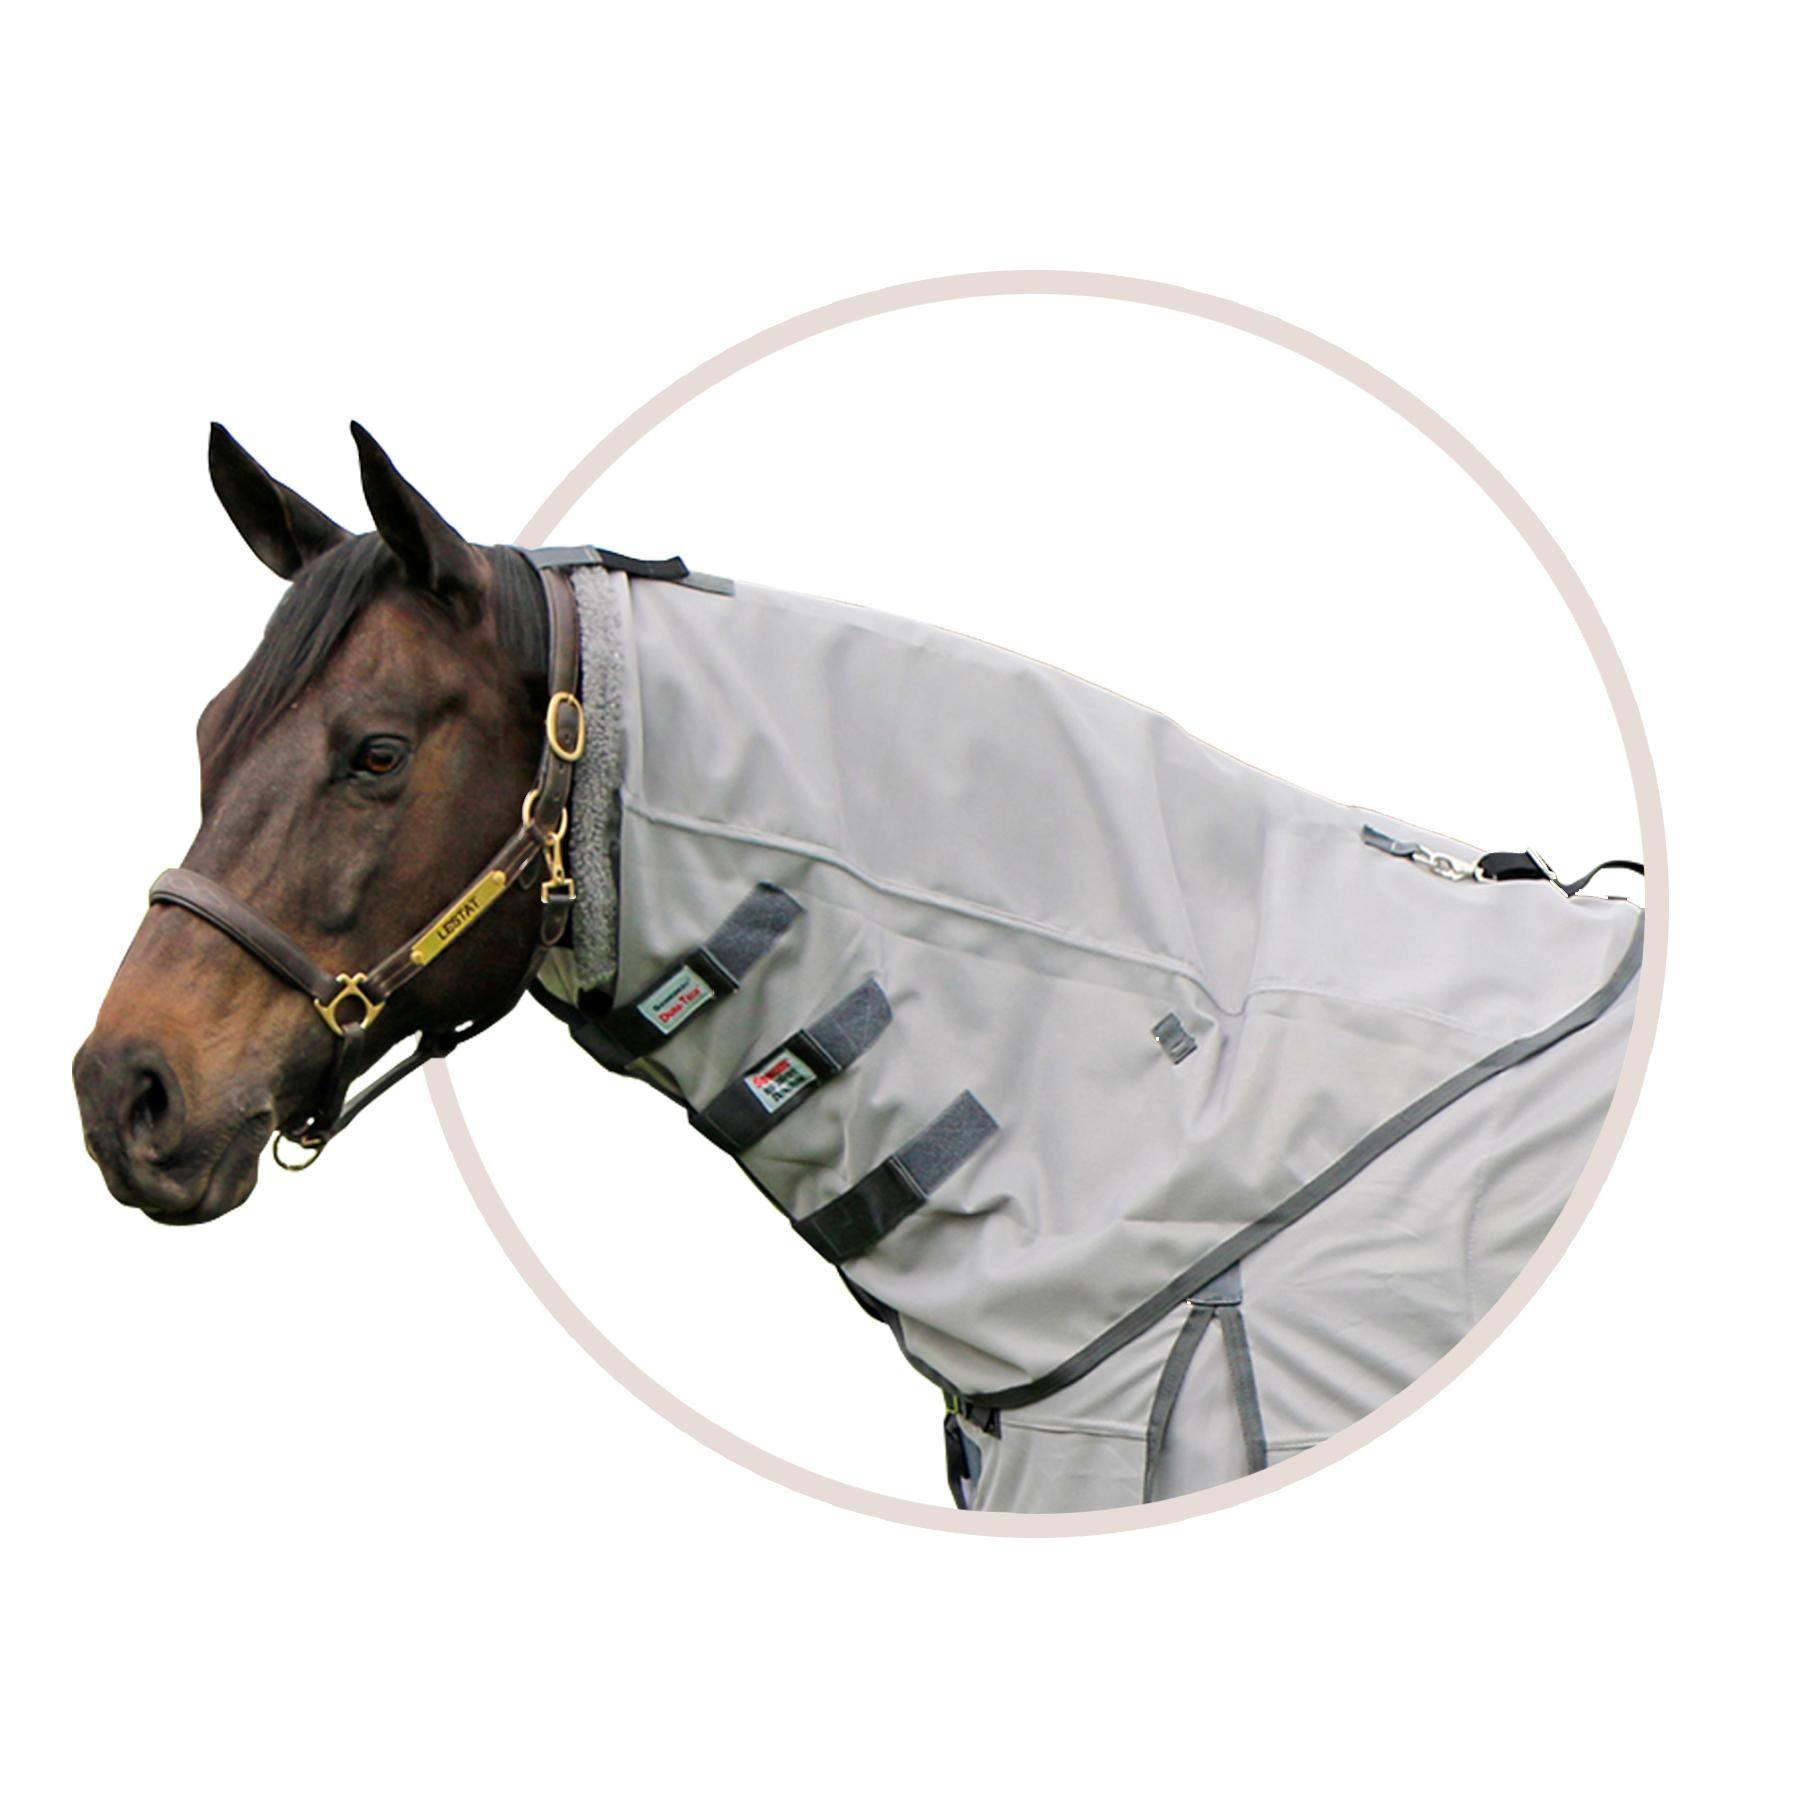 Interlock Mesh Fly Neck Cover